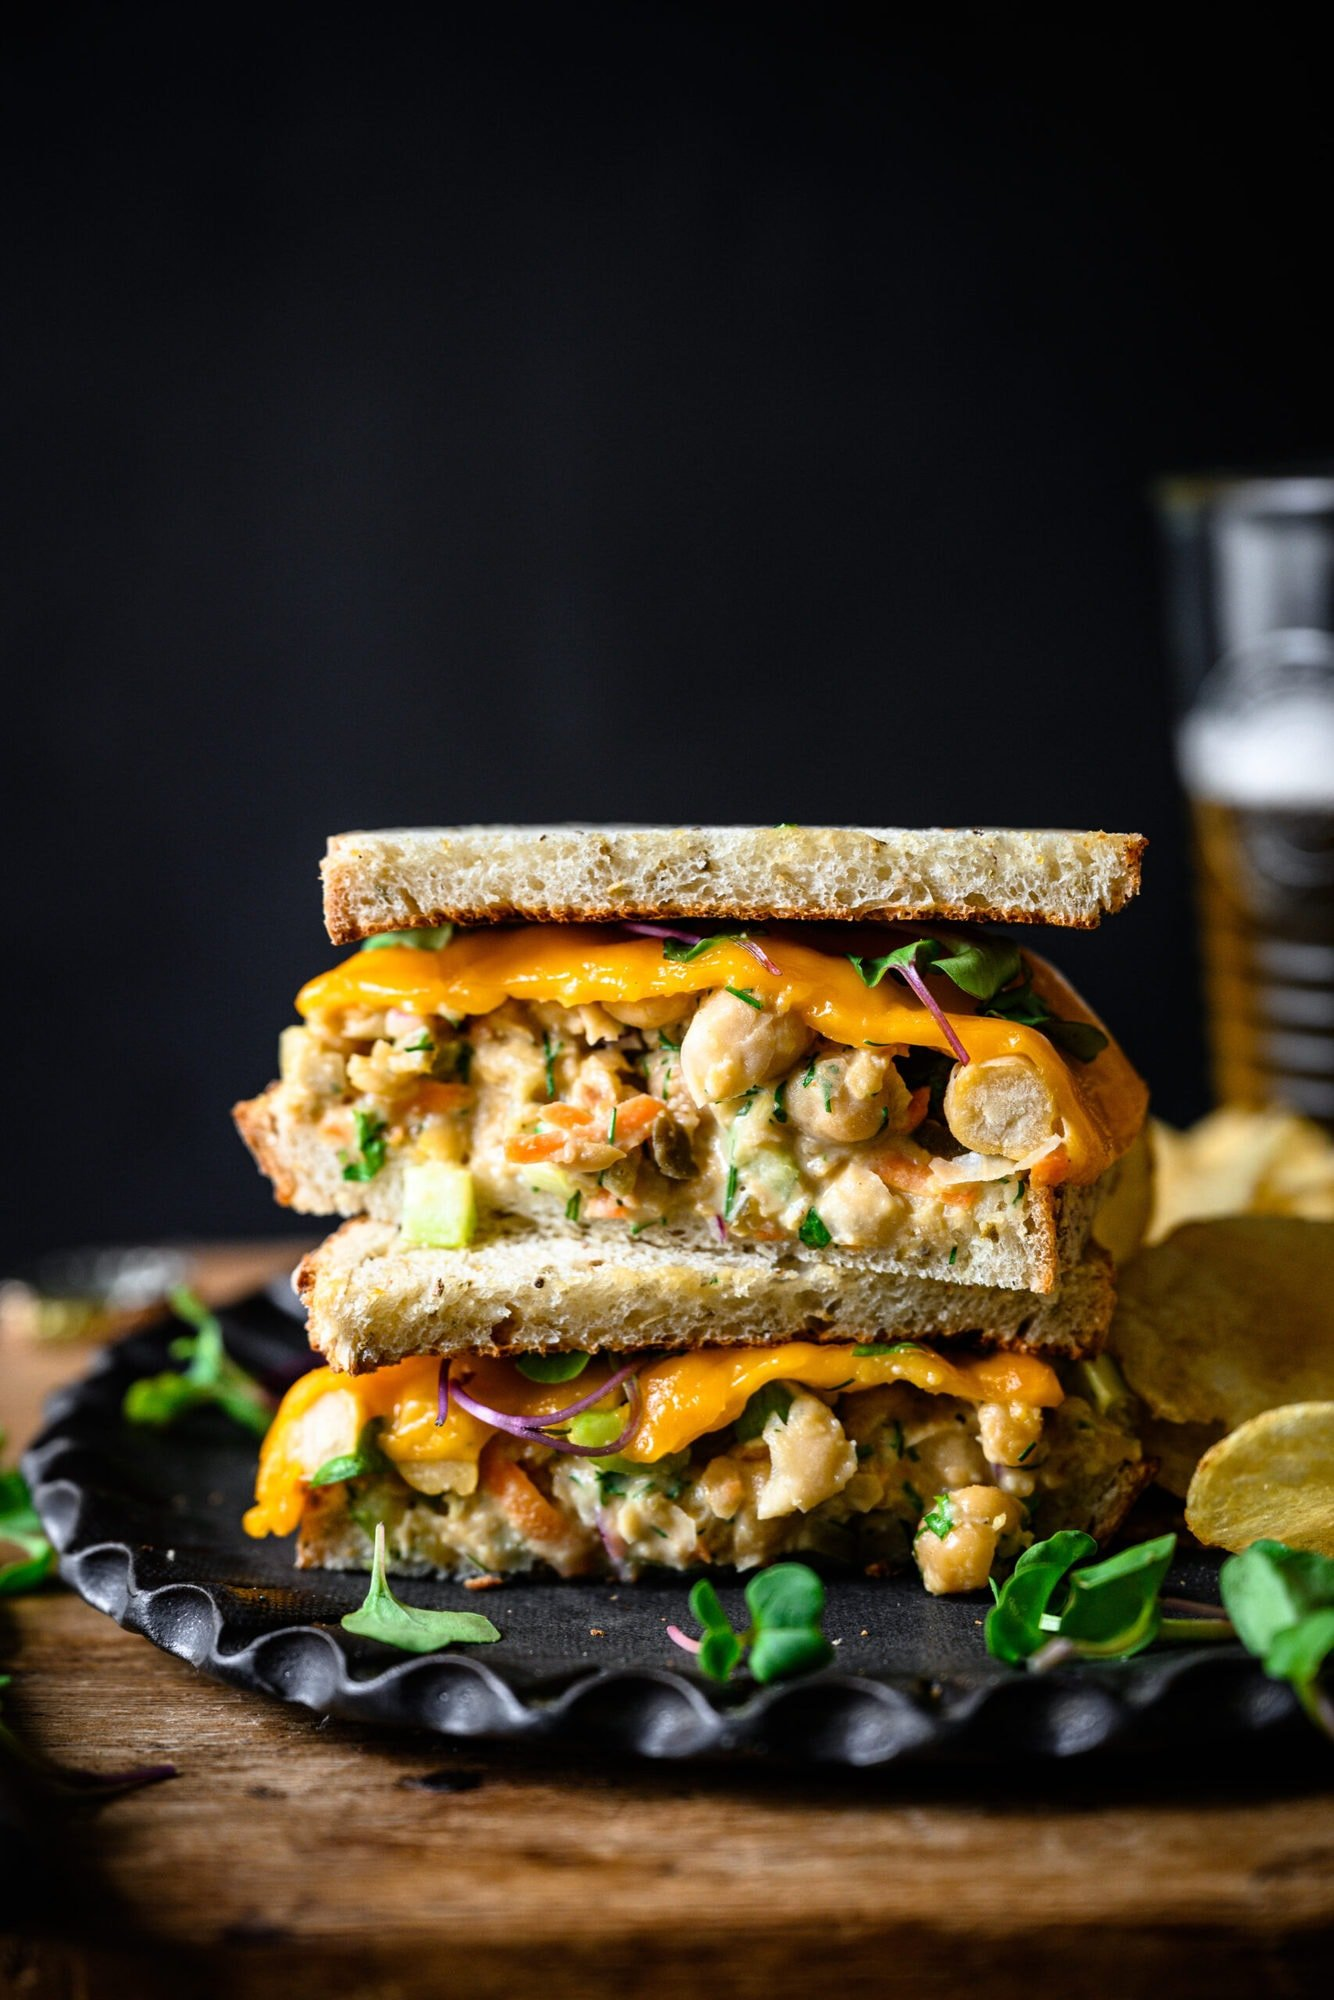 side view of a vegan tuna salad sandwich sliced in half and stacked on a plate with potato chips.